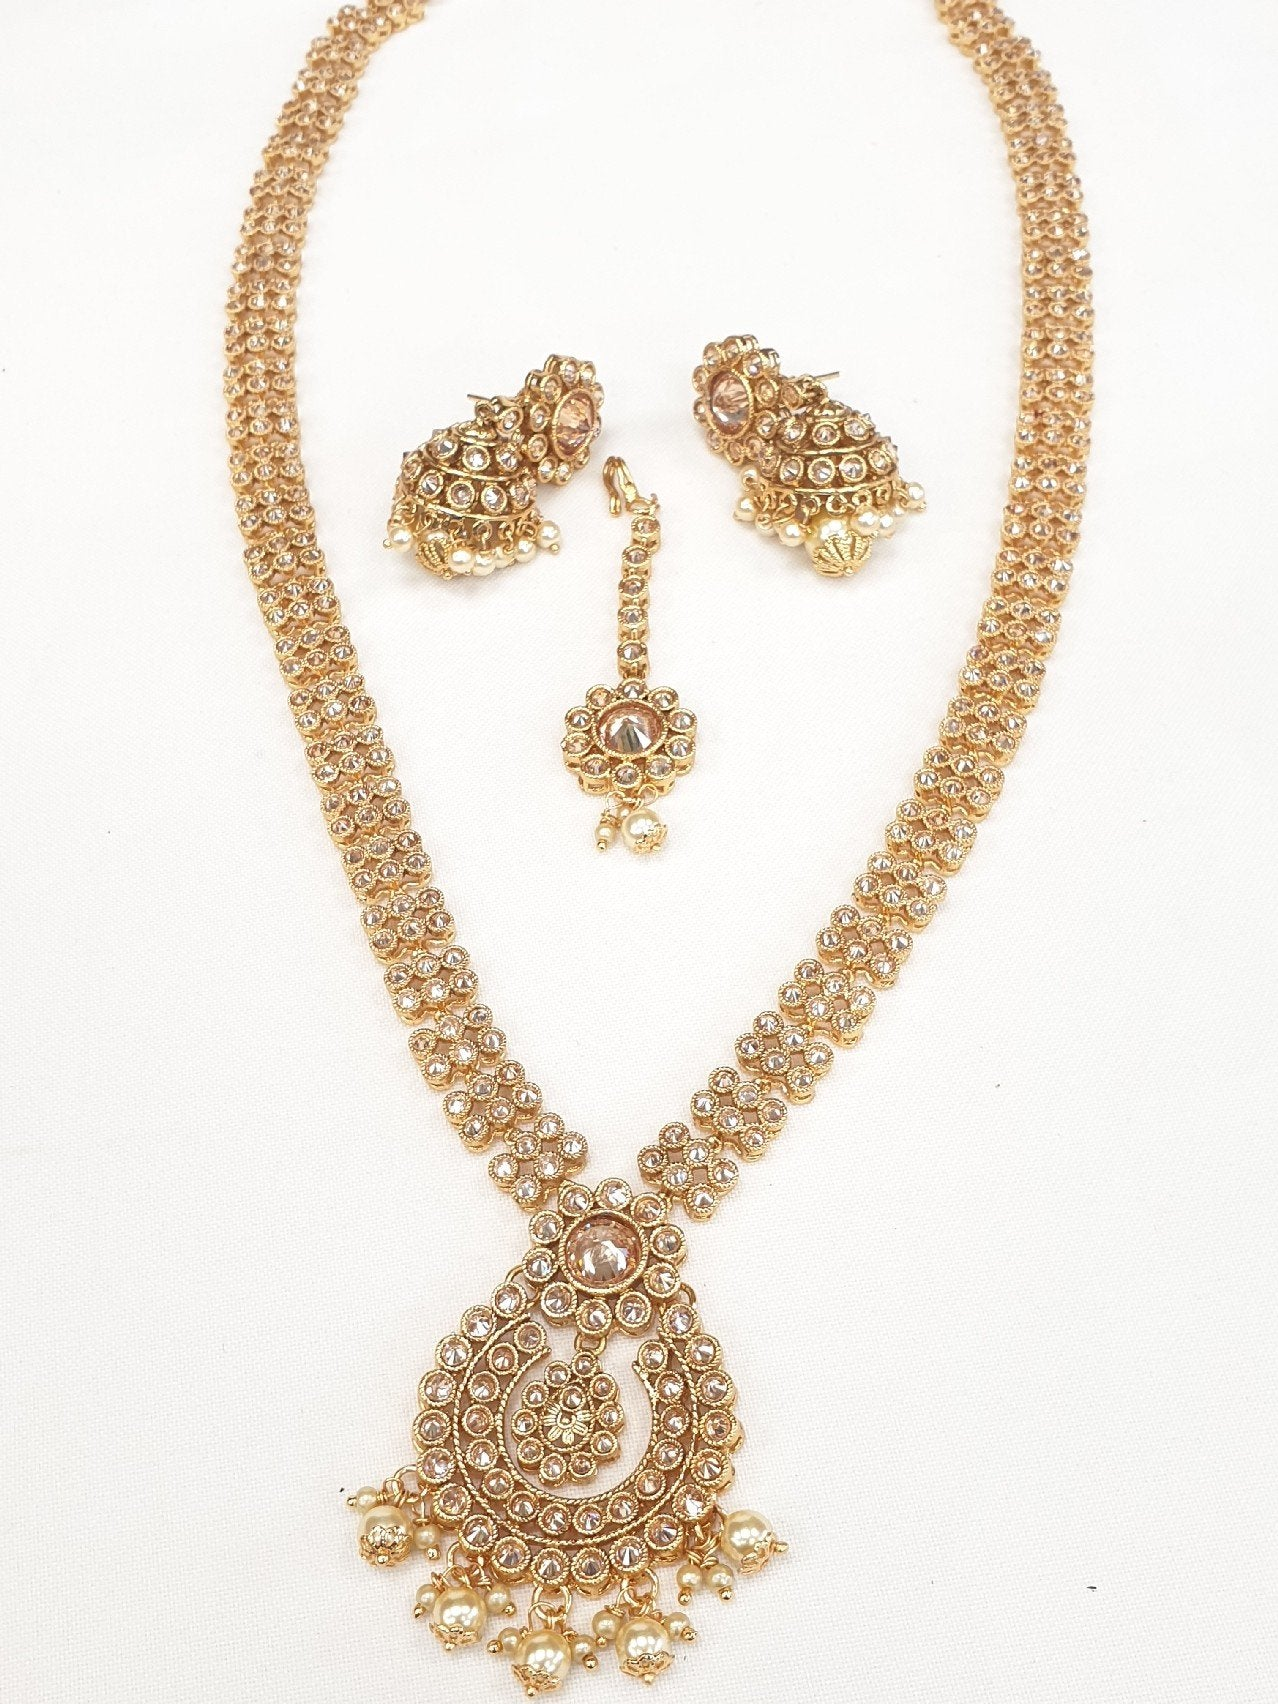 Long necklace & Earrings set - Bollywood - Weddings - AVON5010 VK0919 - Prachy Creations